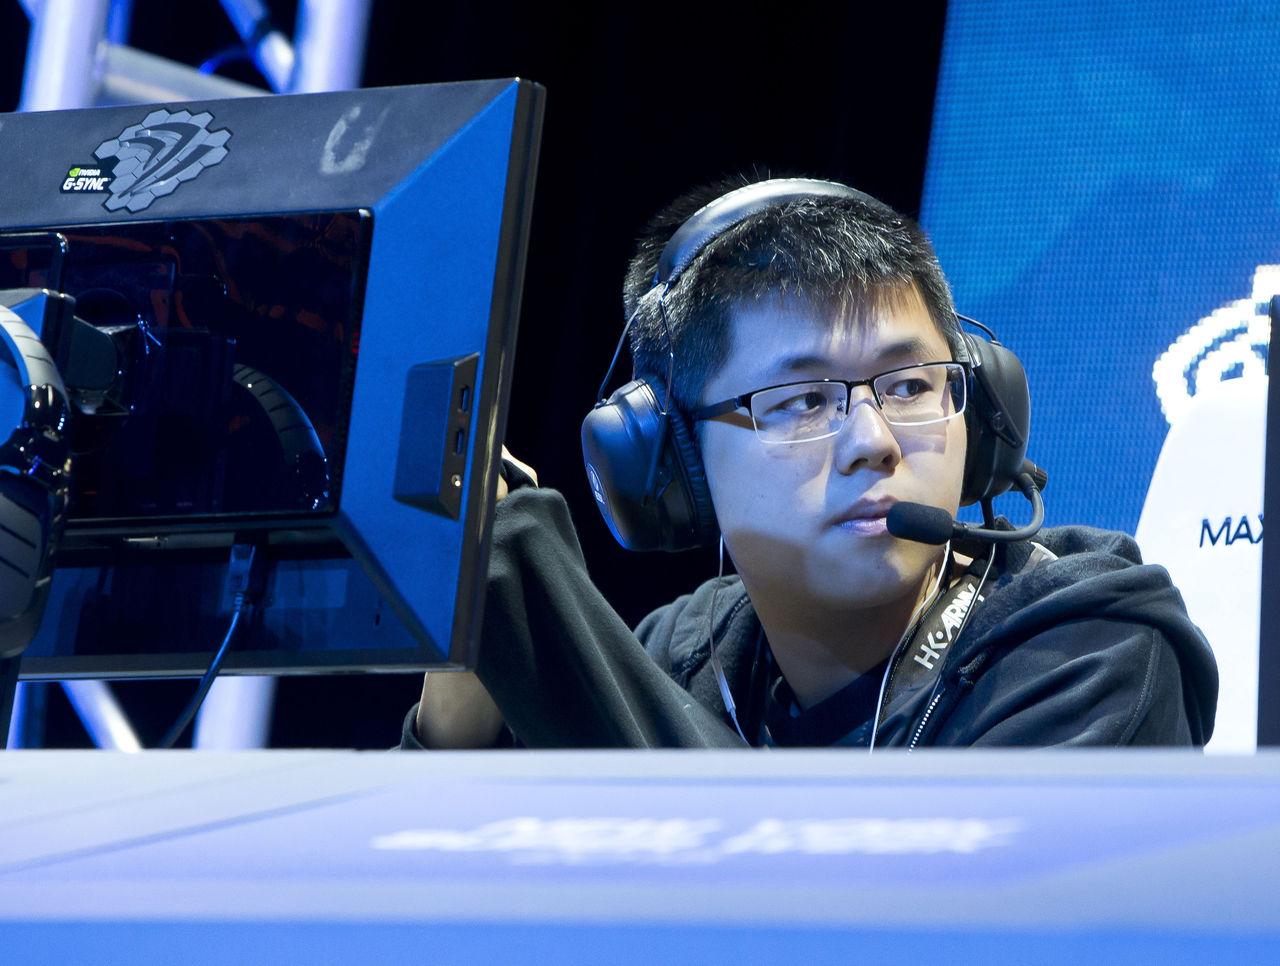 theScore esports Daily (Nov. 15): coL release EE and Sneyking as Skem gets benched, Heen officially steps down as Liquid's coach and SKT reportedly looking to reacquire Peanut